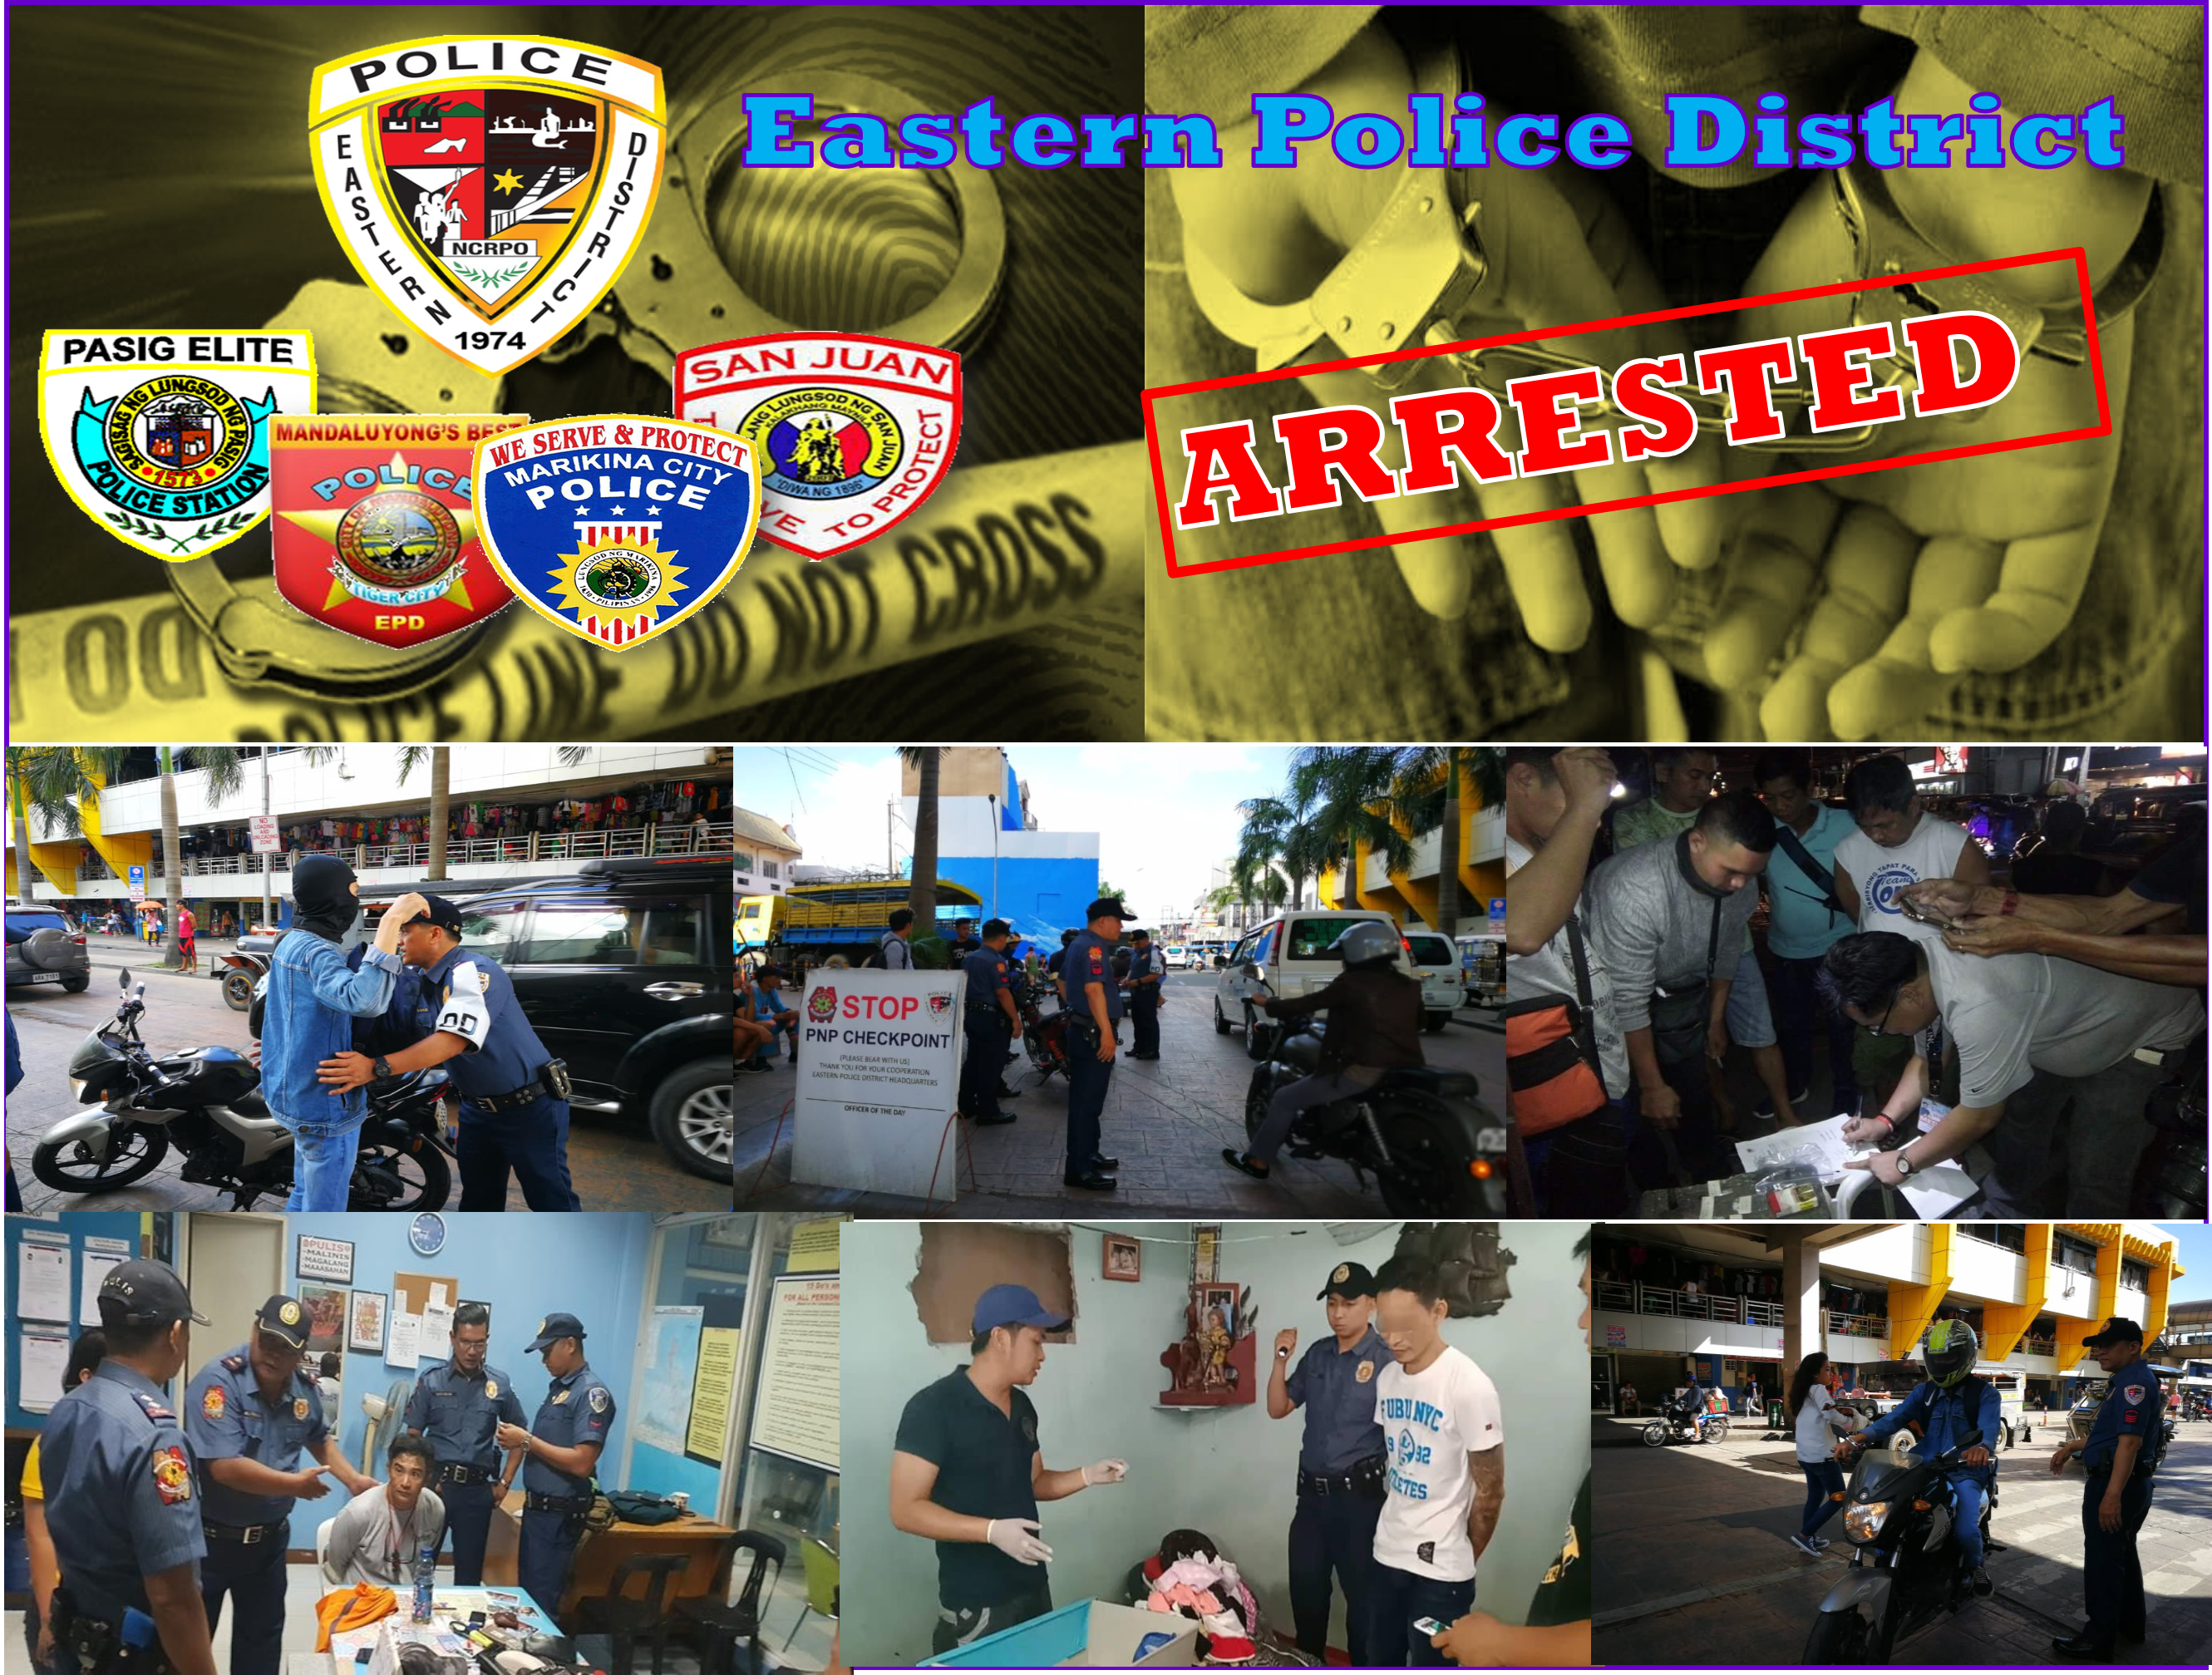 12 Persons Arrested for Various Criminal Offenses and 833 Accosted for Violation of City Ordinances in a Day